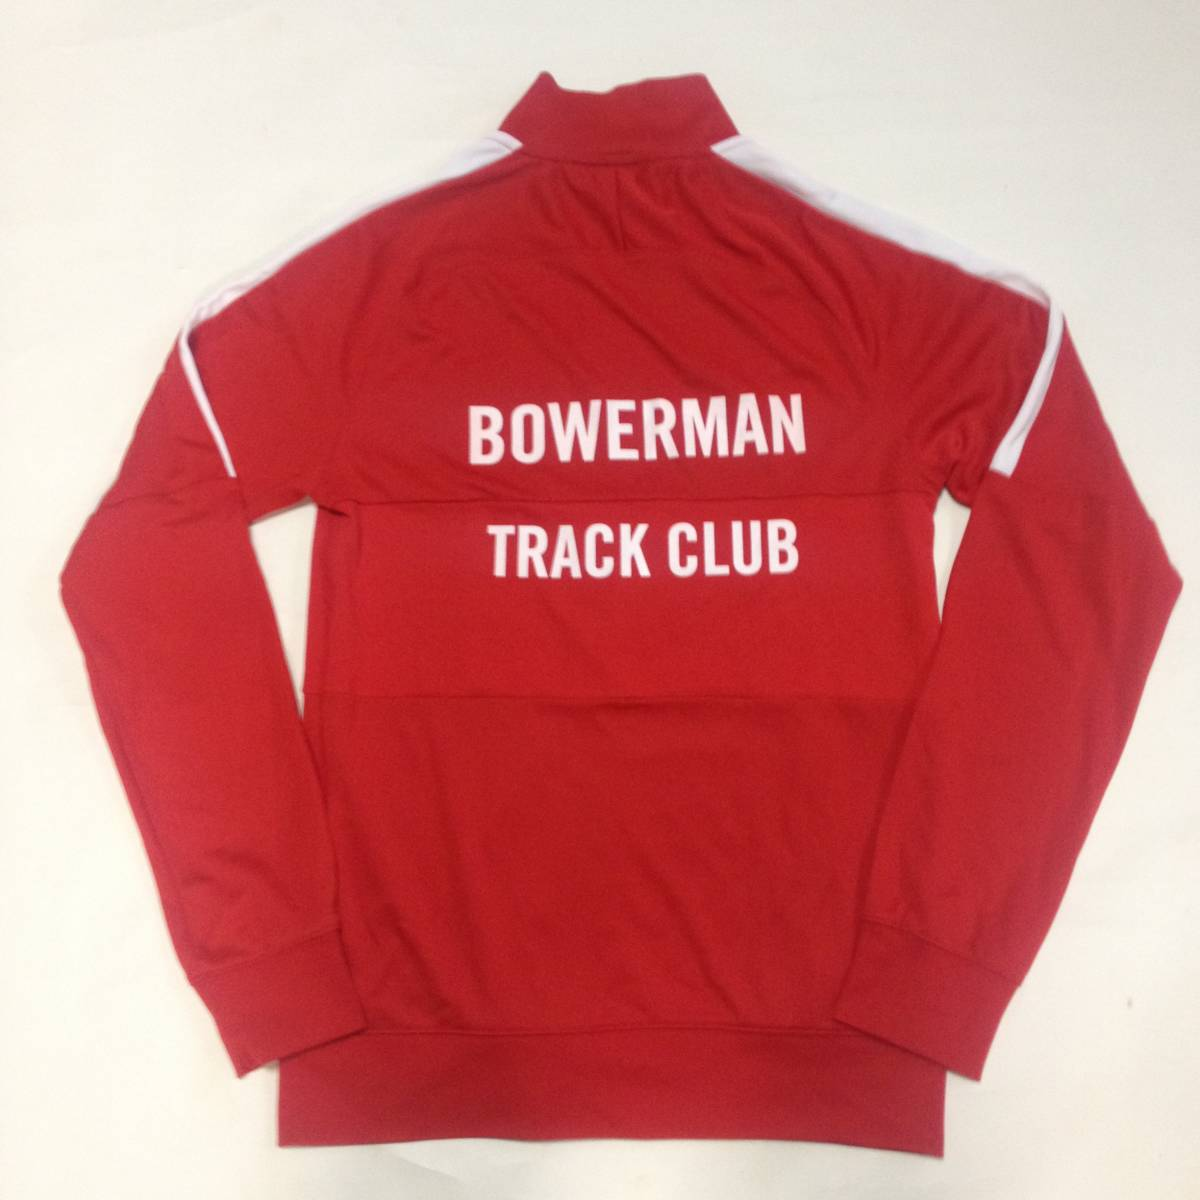 【Youth XLサイズ】BTC Track Jacket 2.0【Bowerman Track Club】